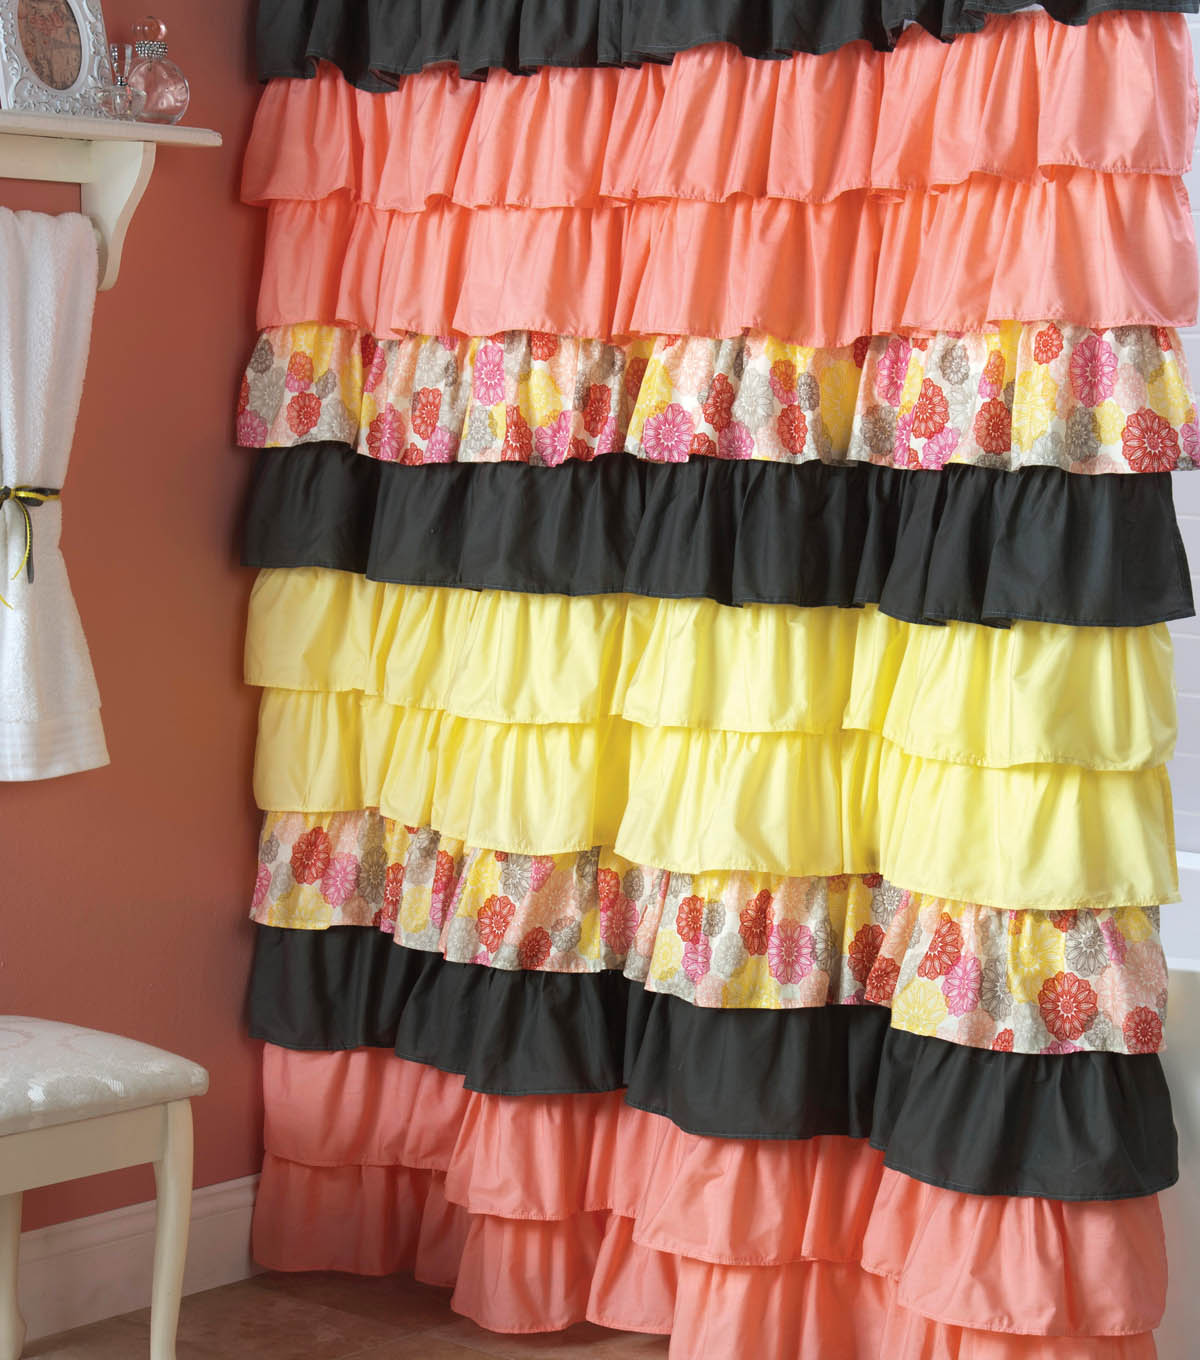 DIY Ruffle Shower Curtain - DIY Projects | JOANN